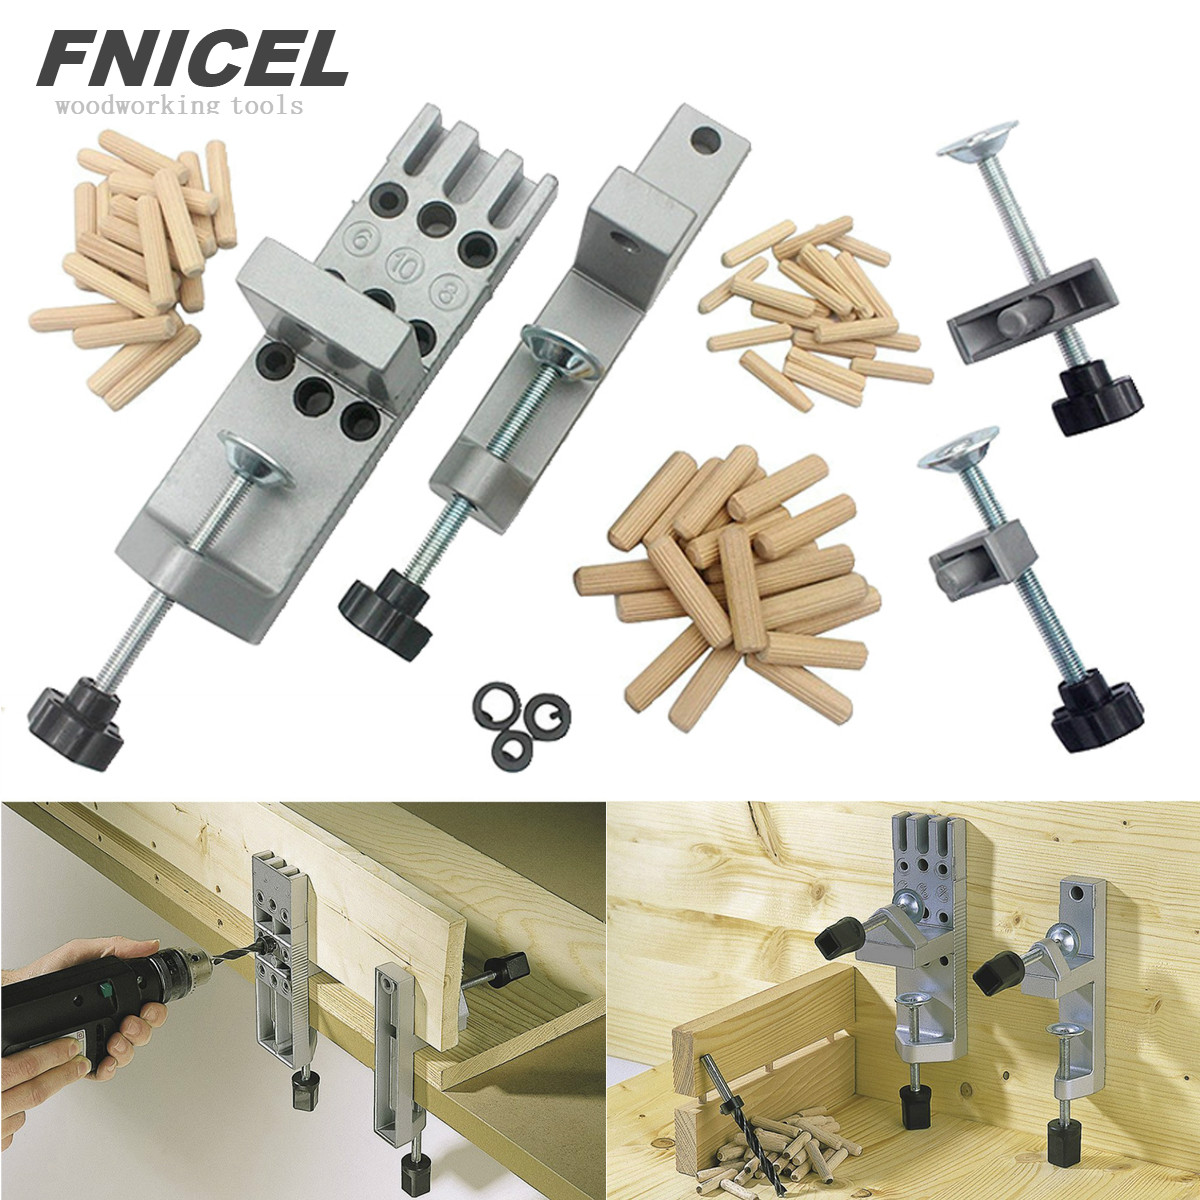 NEW Punch Positioner Dowelling Jig for Furniture Fast Connecting Woodworking Drilling Guide Kit Location ToolsNEW Punch Positioner Dowelling Jig for Furniture Fast Connecting Woodworking Drilling Guide Kit Location Tools